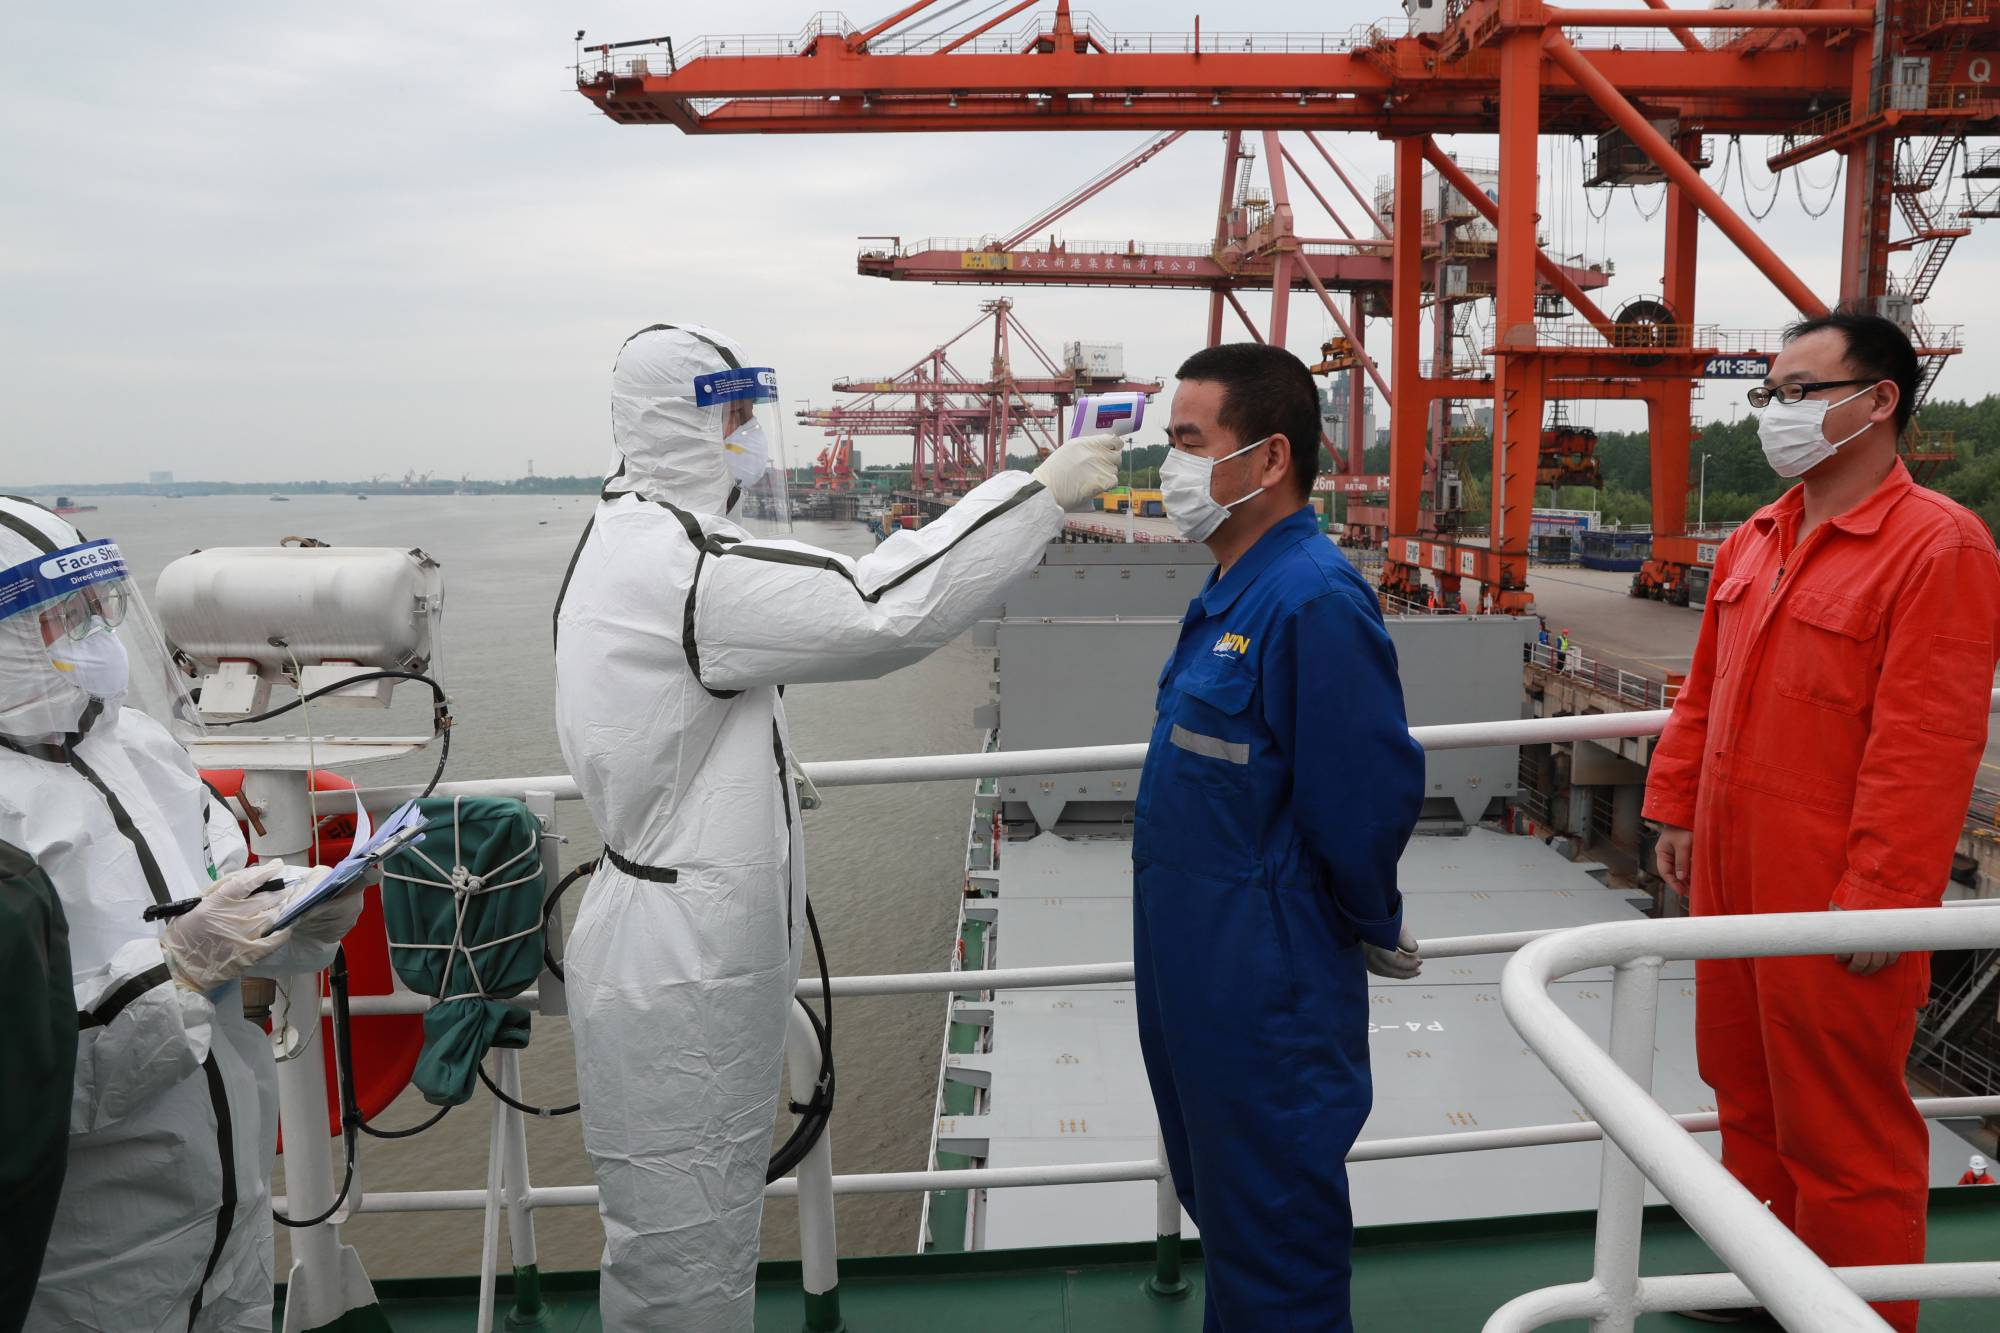 A person in a protective suit takes a body temperature measurement of a crew member of a cargo ship bound for Japan at a container terminal in the port in Wuhan, Hubei province, China, on Saturday.  | CHINA DAILY / VIA REUTERS